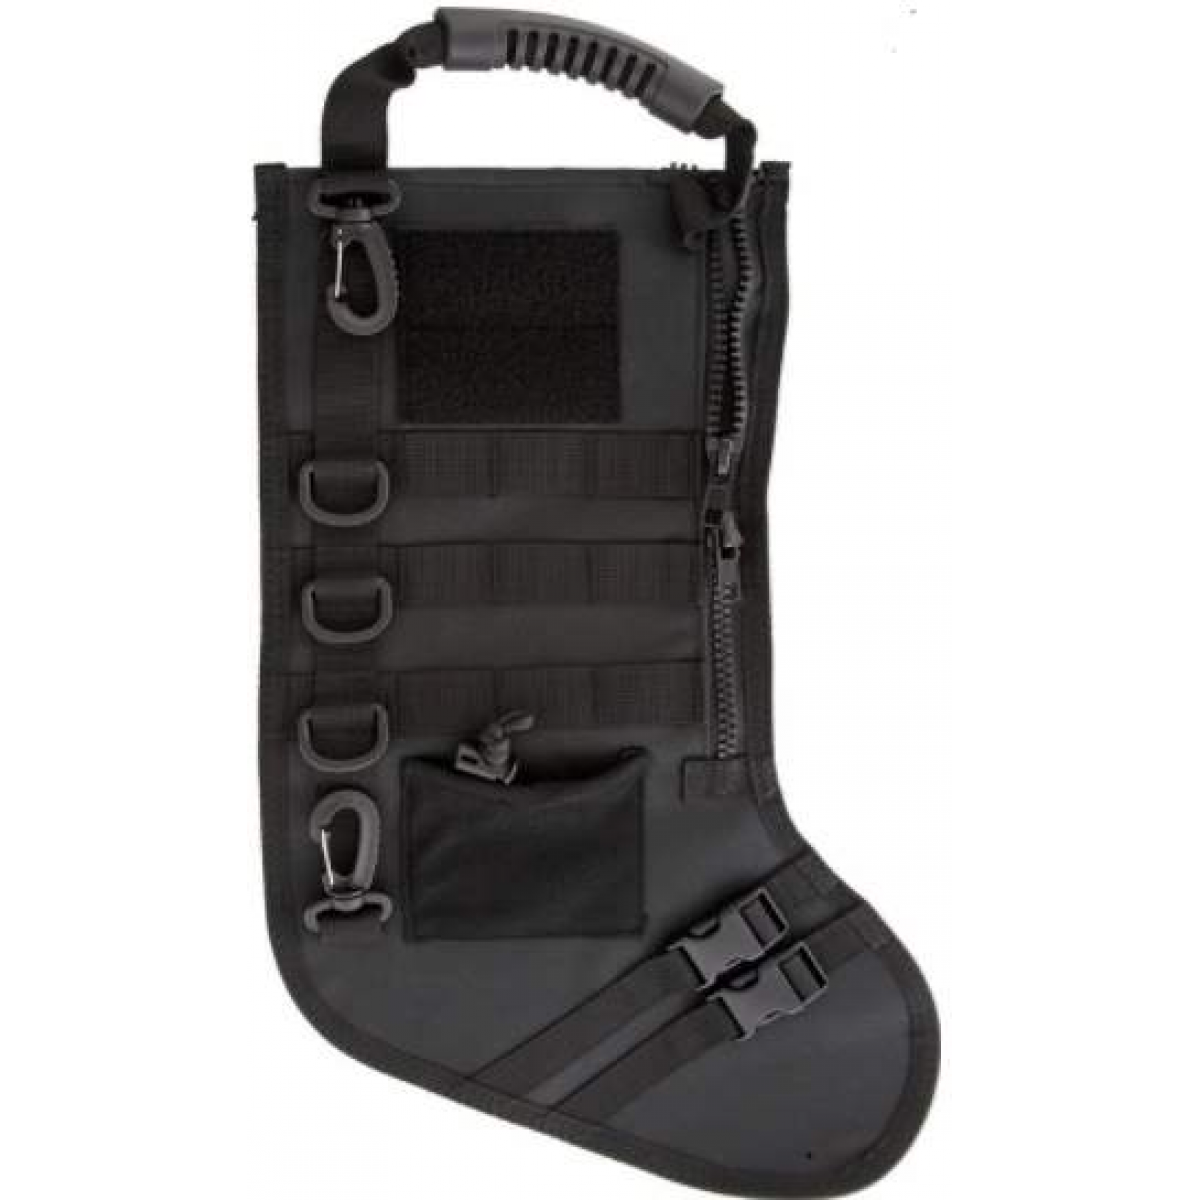 Tactical Christmas Stocking.Tactical Christmas Stocking Great Gift Fishingandhunting Com Au